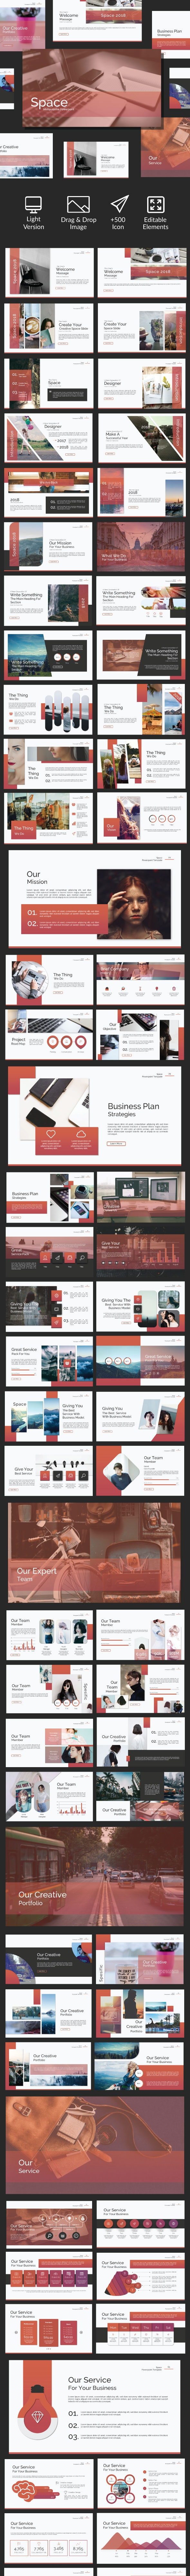 Space - Keynote Template - Business PowerPoint Templates